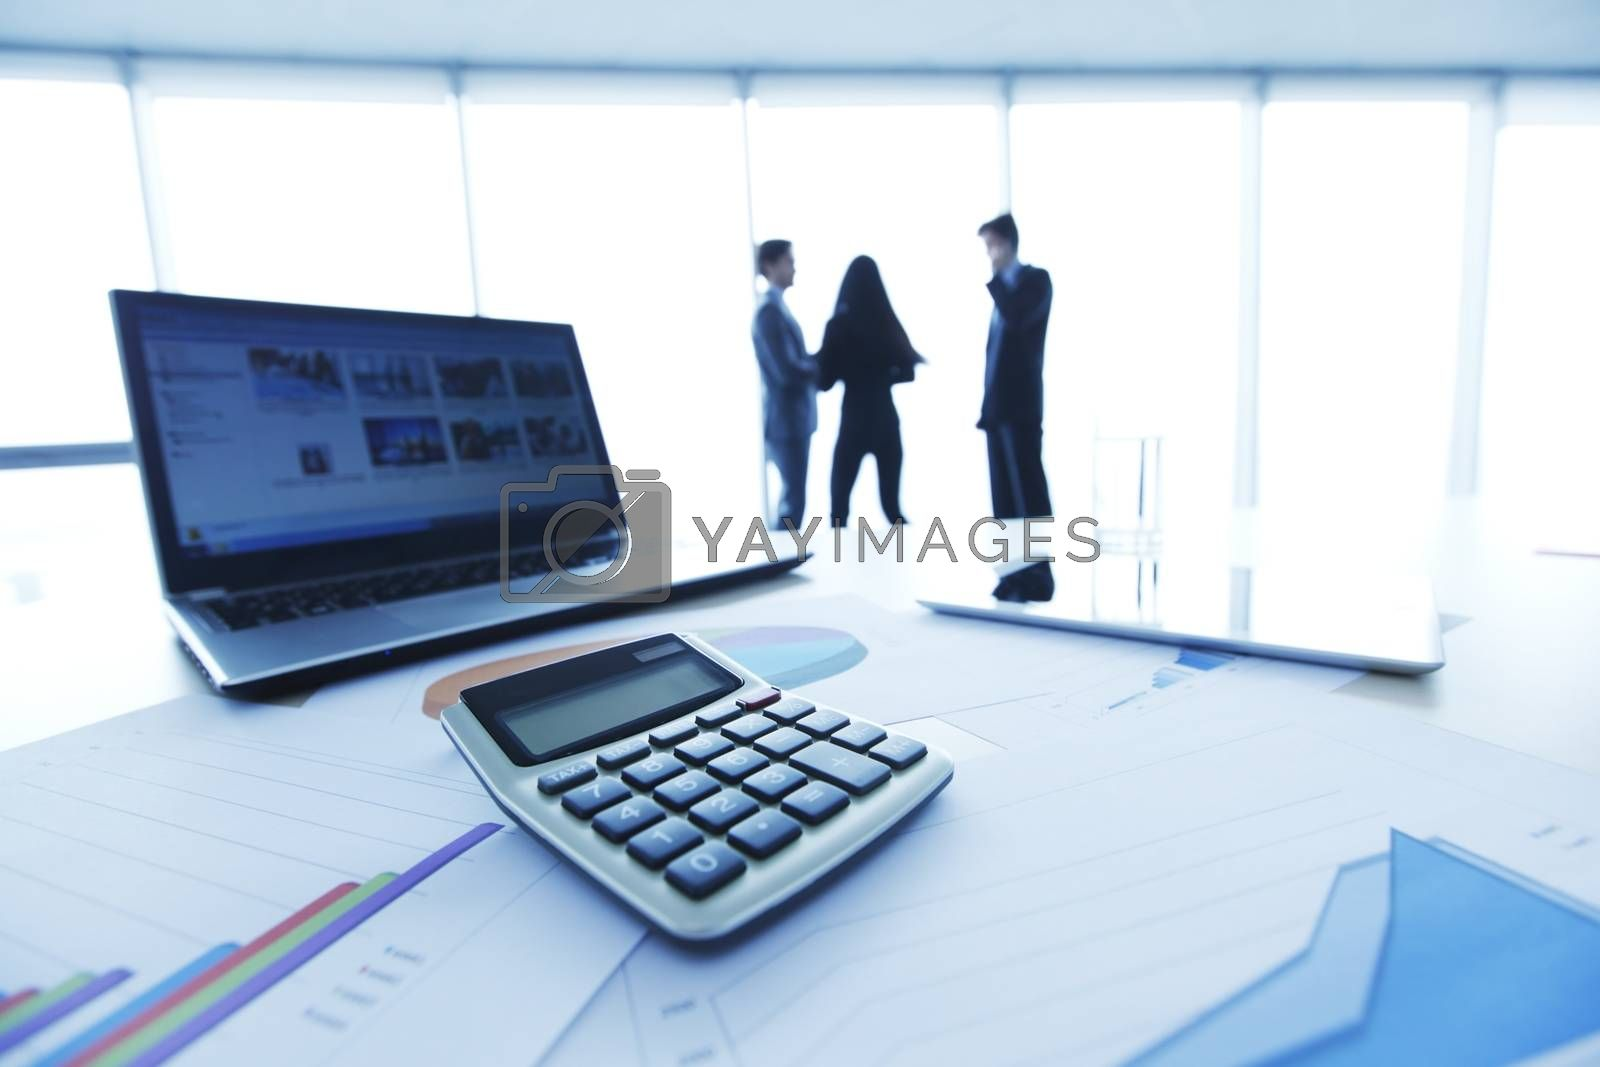 Financial reports, calculator and laptop on table in office